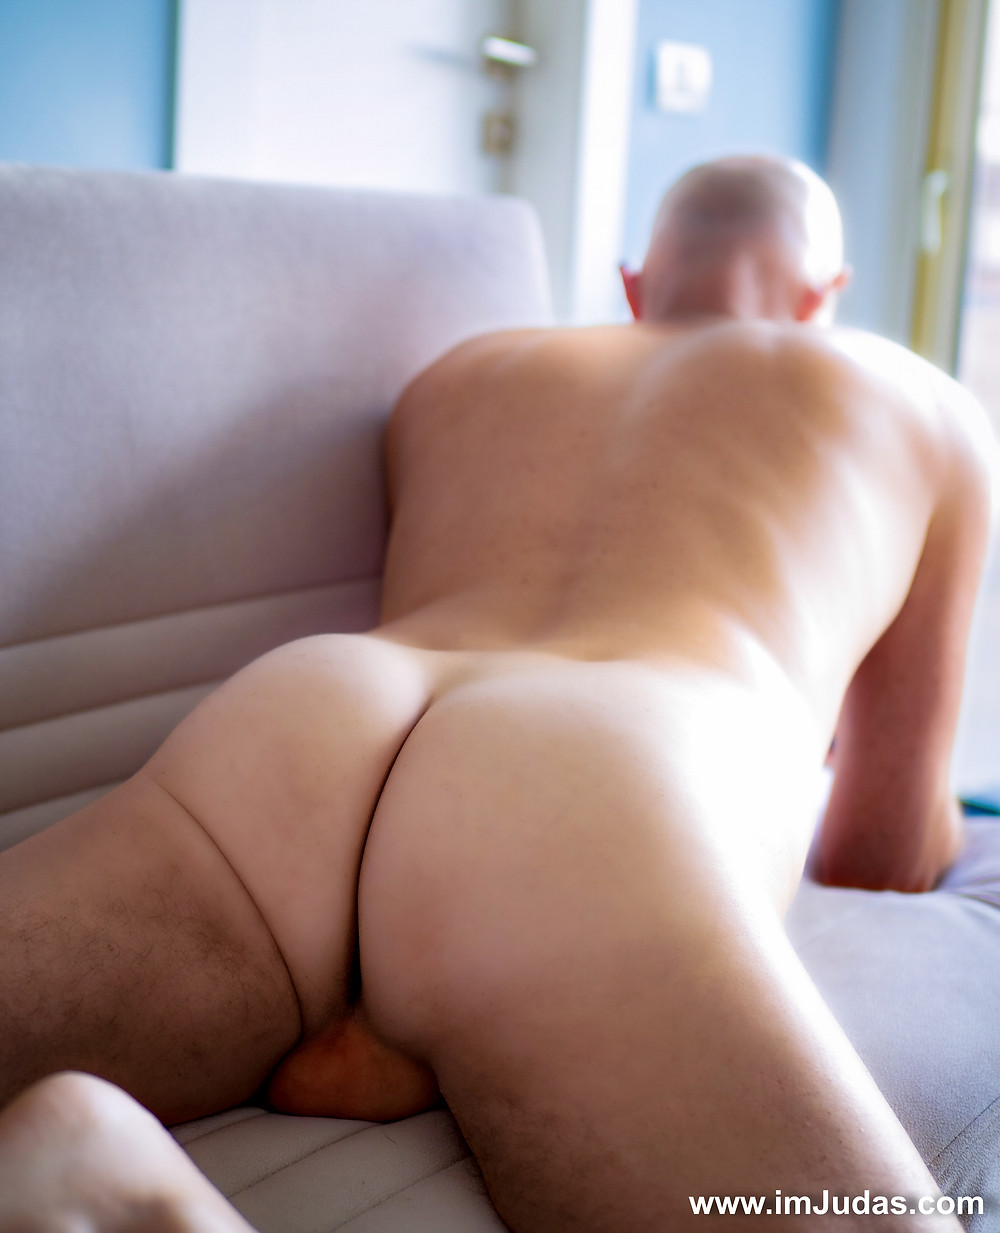 ass naked male model gay sex man nude